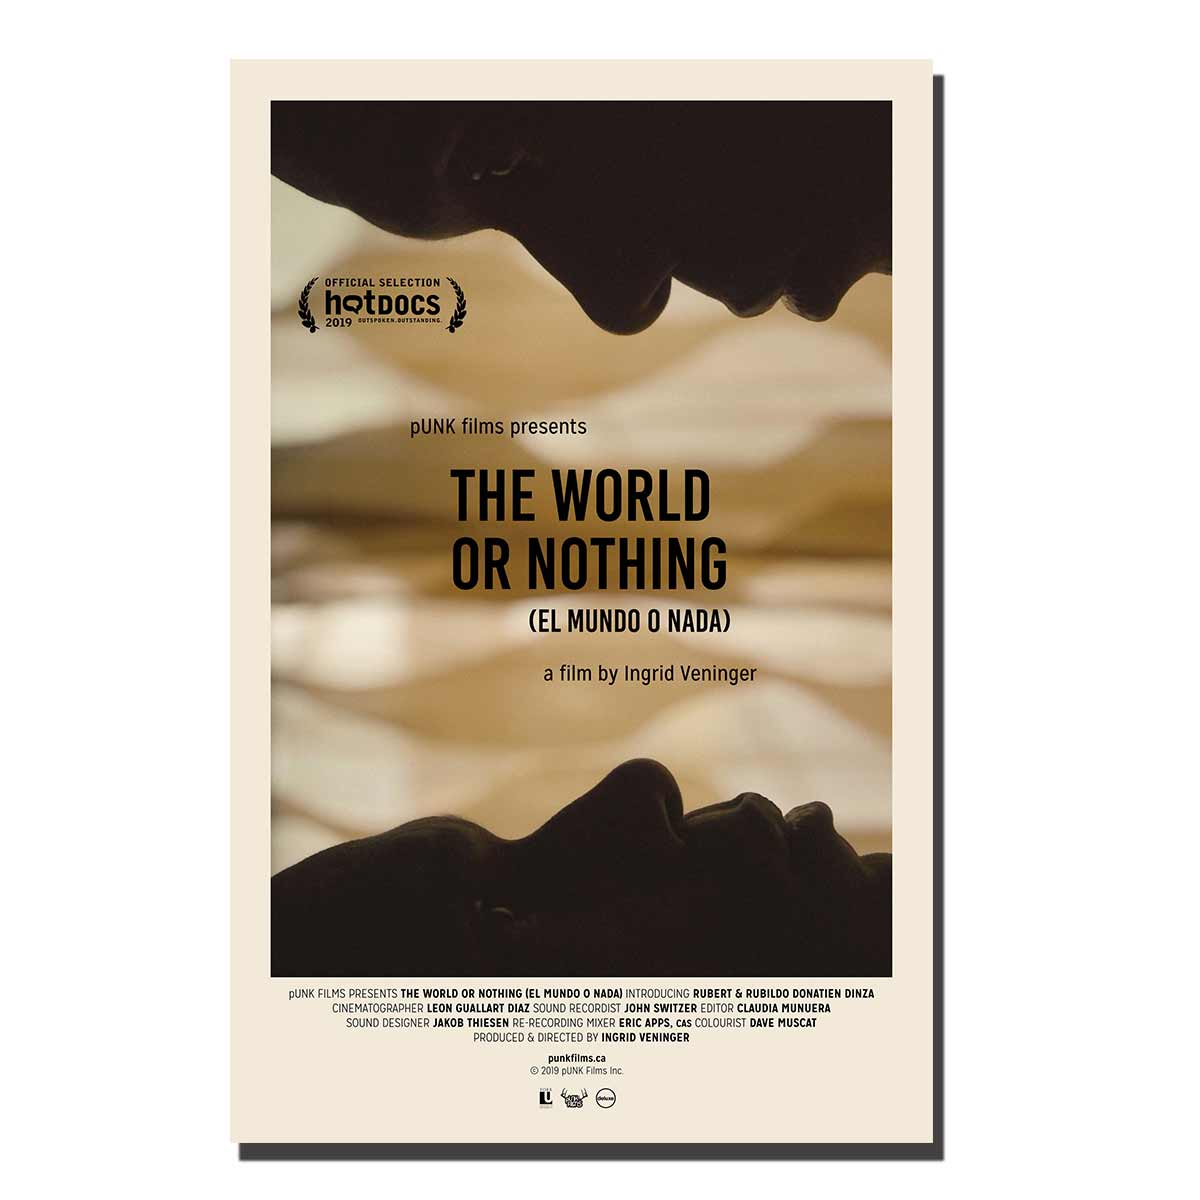 C264 The World or Nothing Movie Art Silk Poster Pictures 24x36 12x18 27x40 Print Canvas Gift custom image